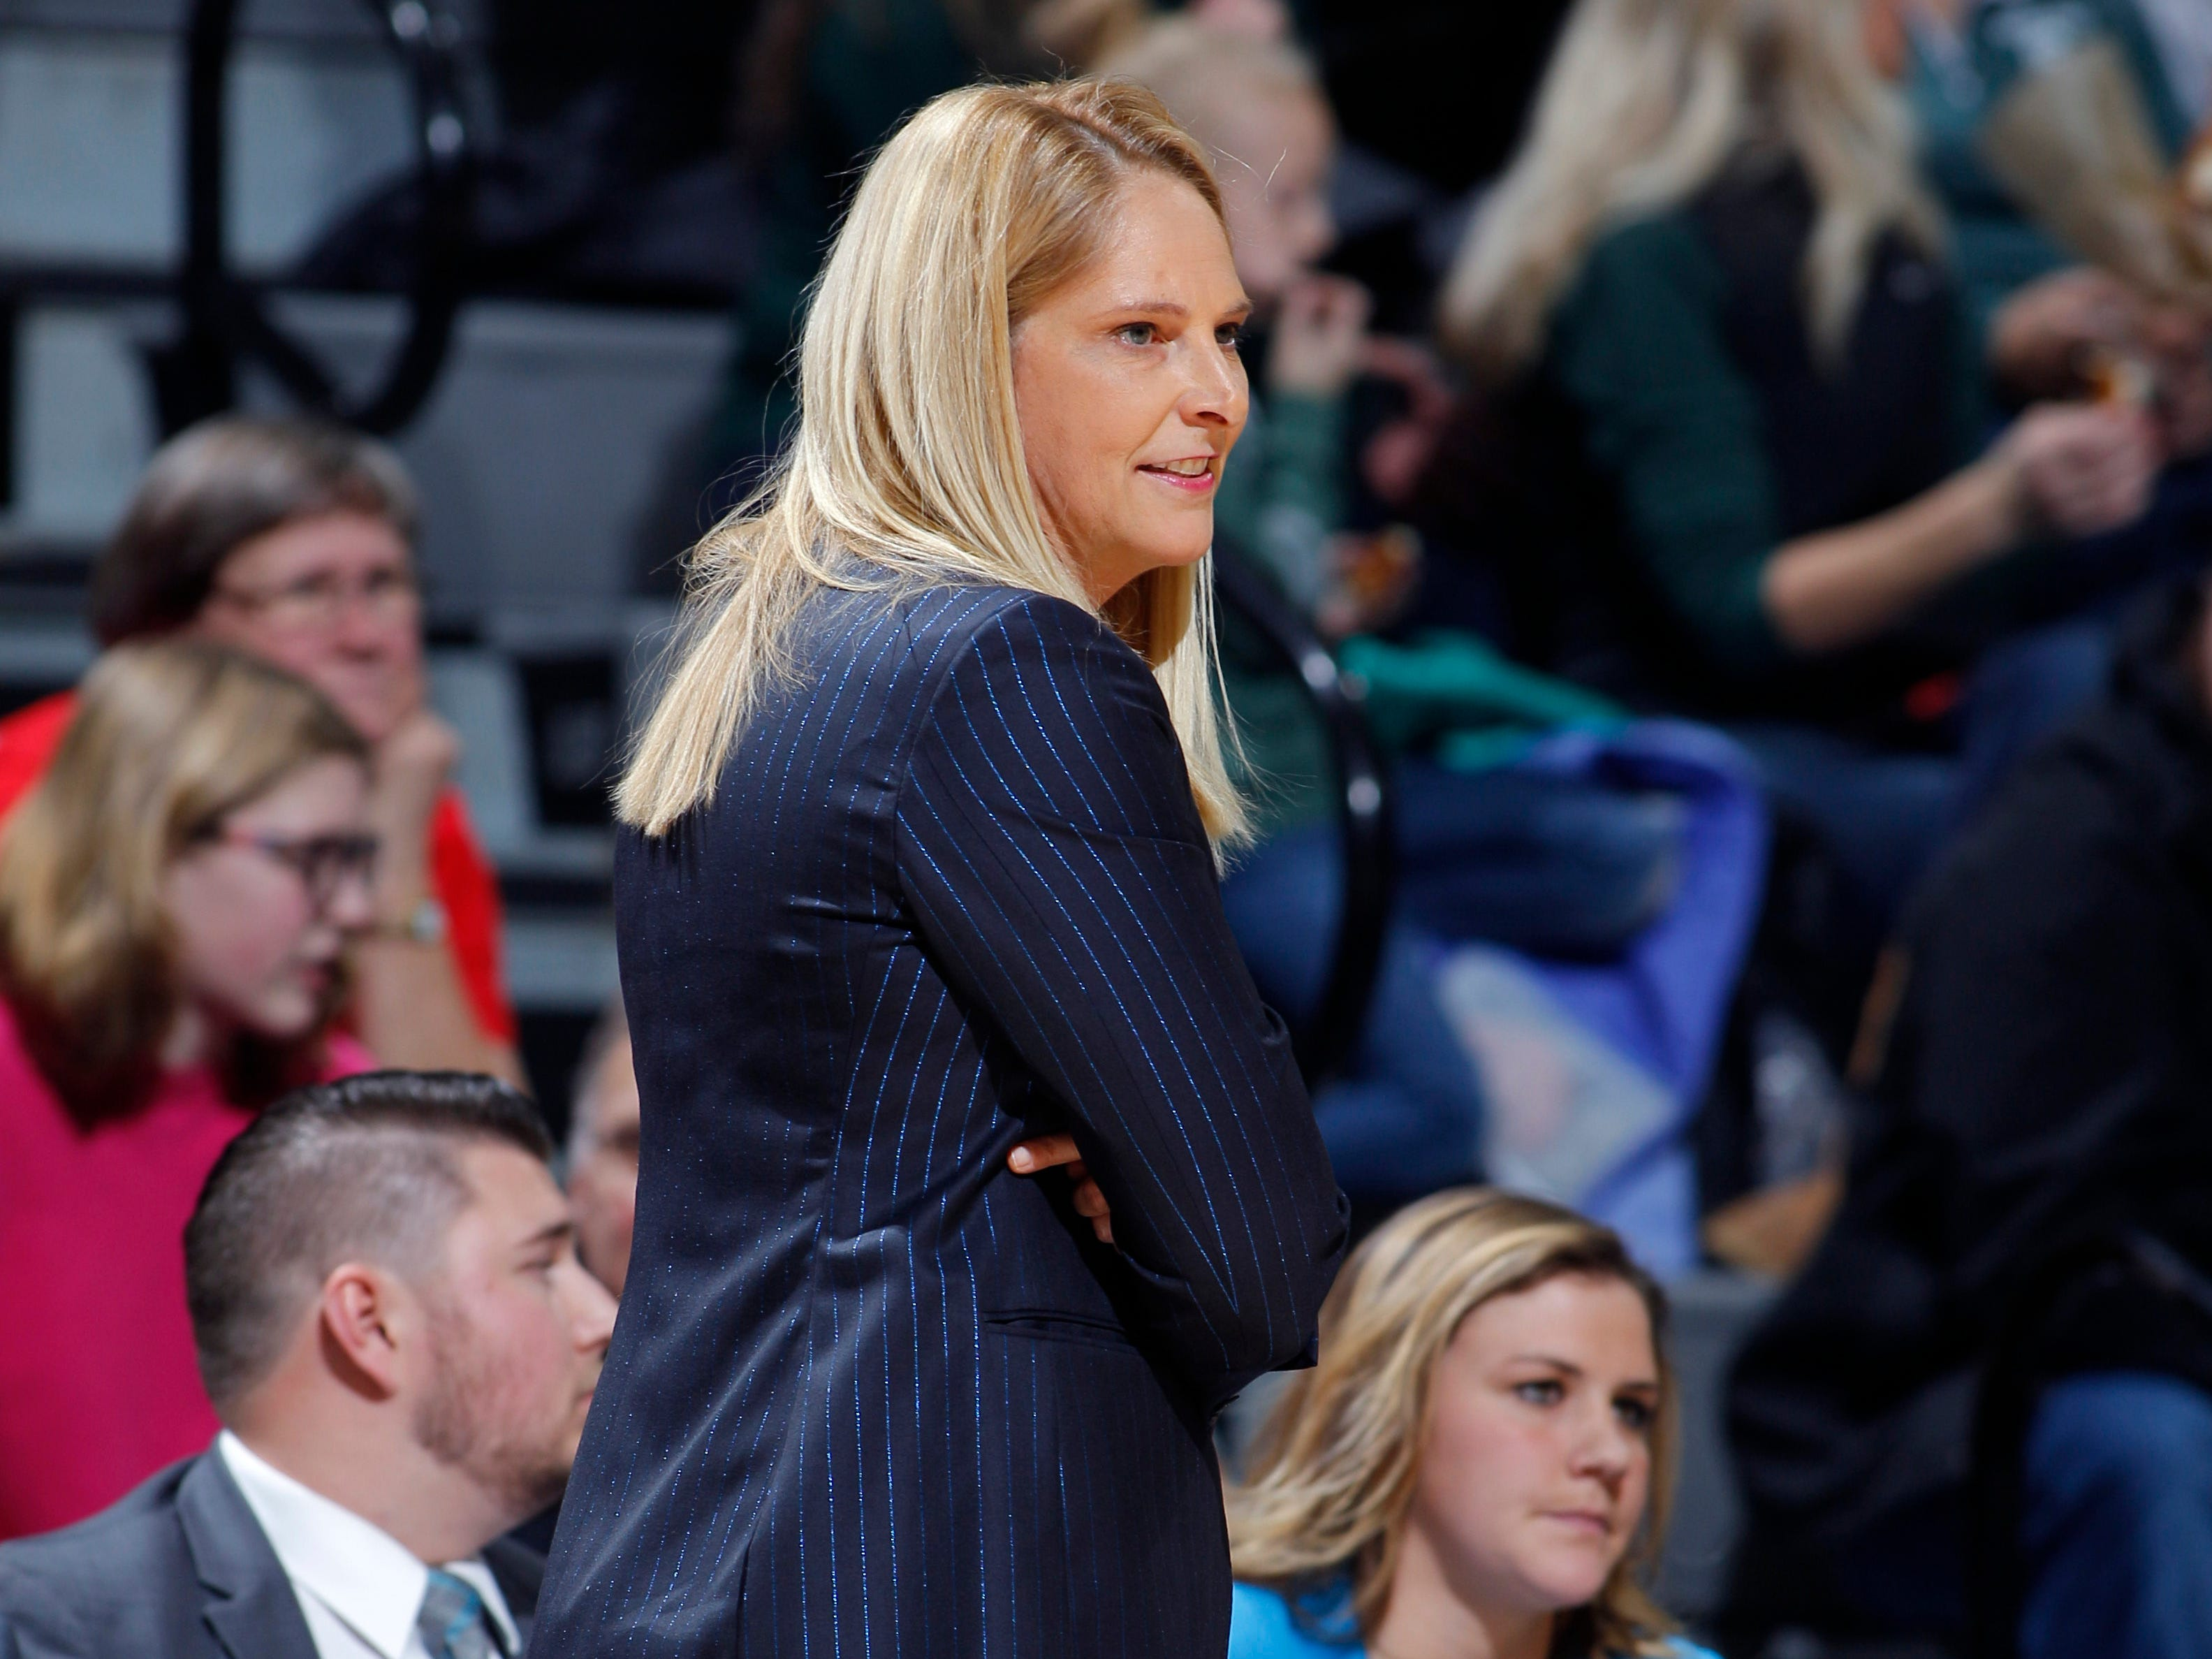 Former Michigan State player Tori Jankoska, right, now with Maryland, watches from the Maryland bench as Maryland head coach Brenda Frese walks the sideline, Thursday, Jan. 17, 2019, in East Lansing, Mich.